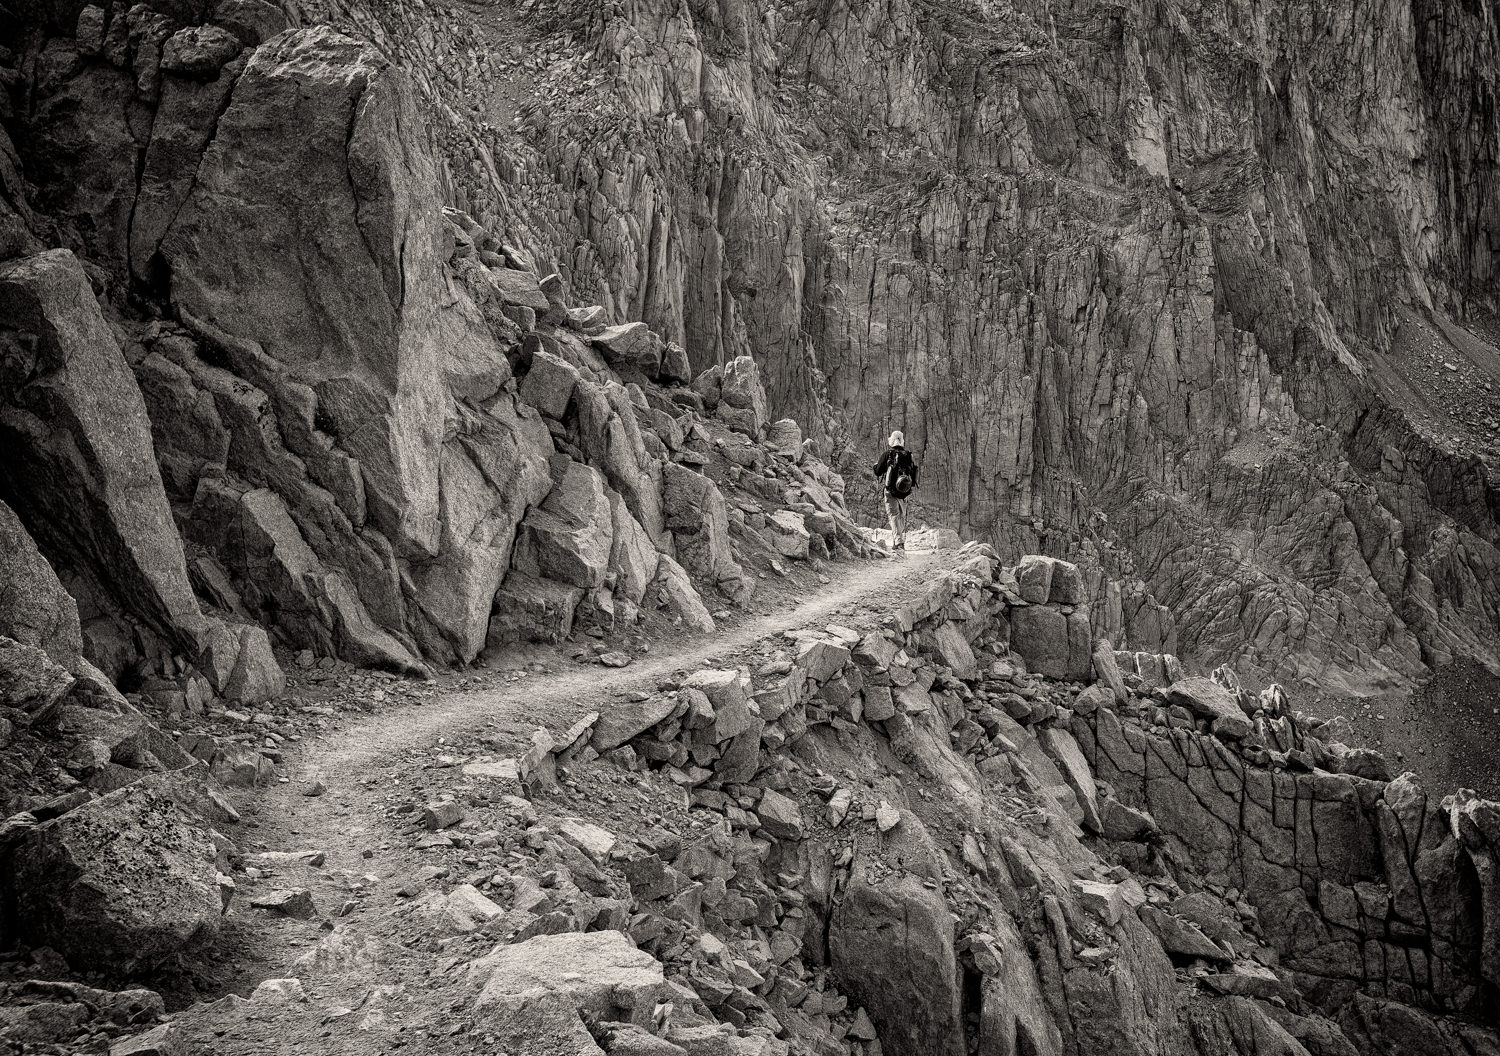 This was more about adding a human element to the scene (Mt. Whitney trail) than showing my face.